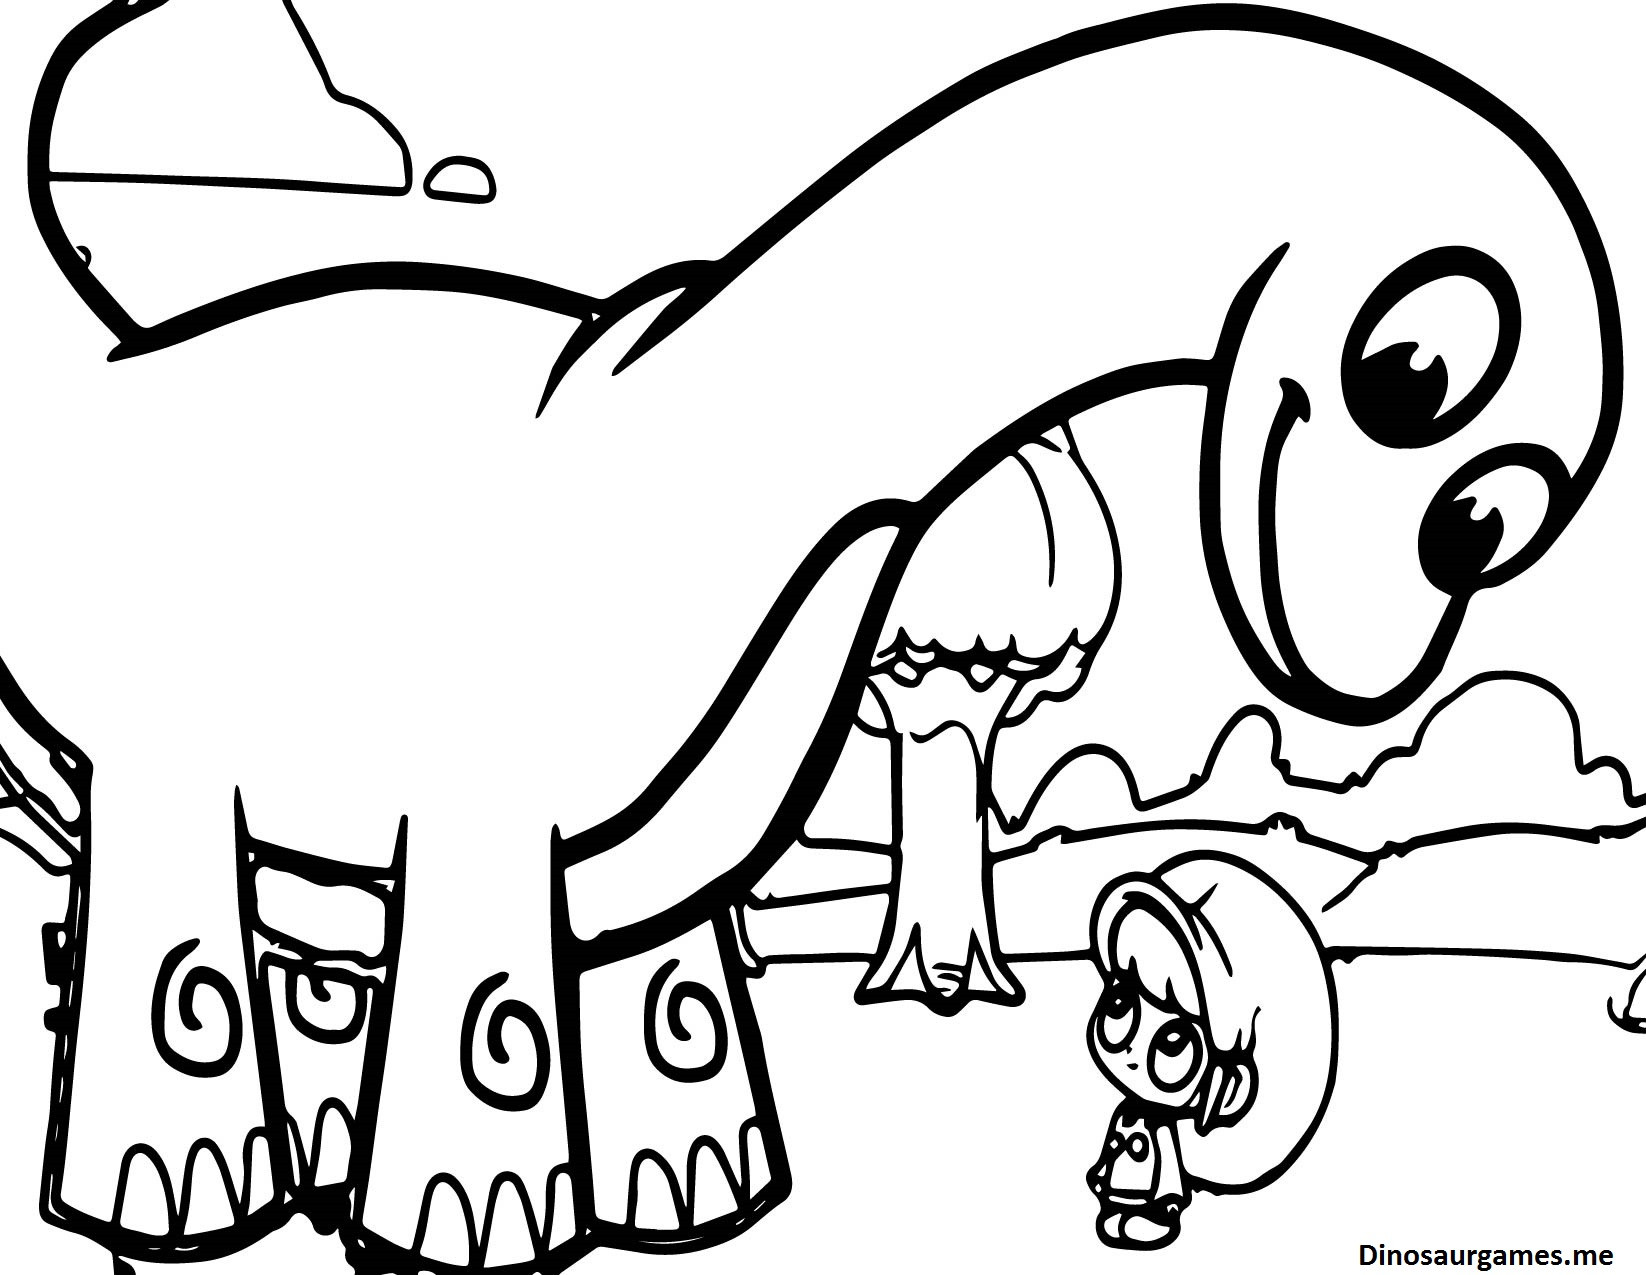 baby dinosaur coloring pages cool small baby dinosaur coloring page dinosaur coloring baby pages coloring dinosaur